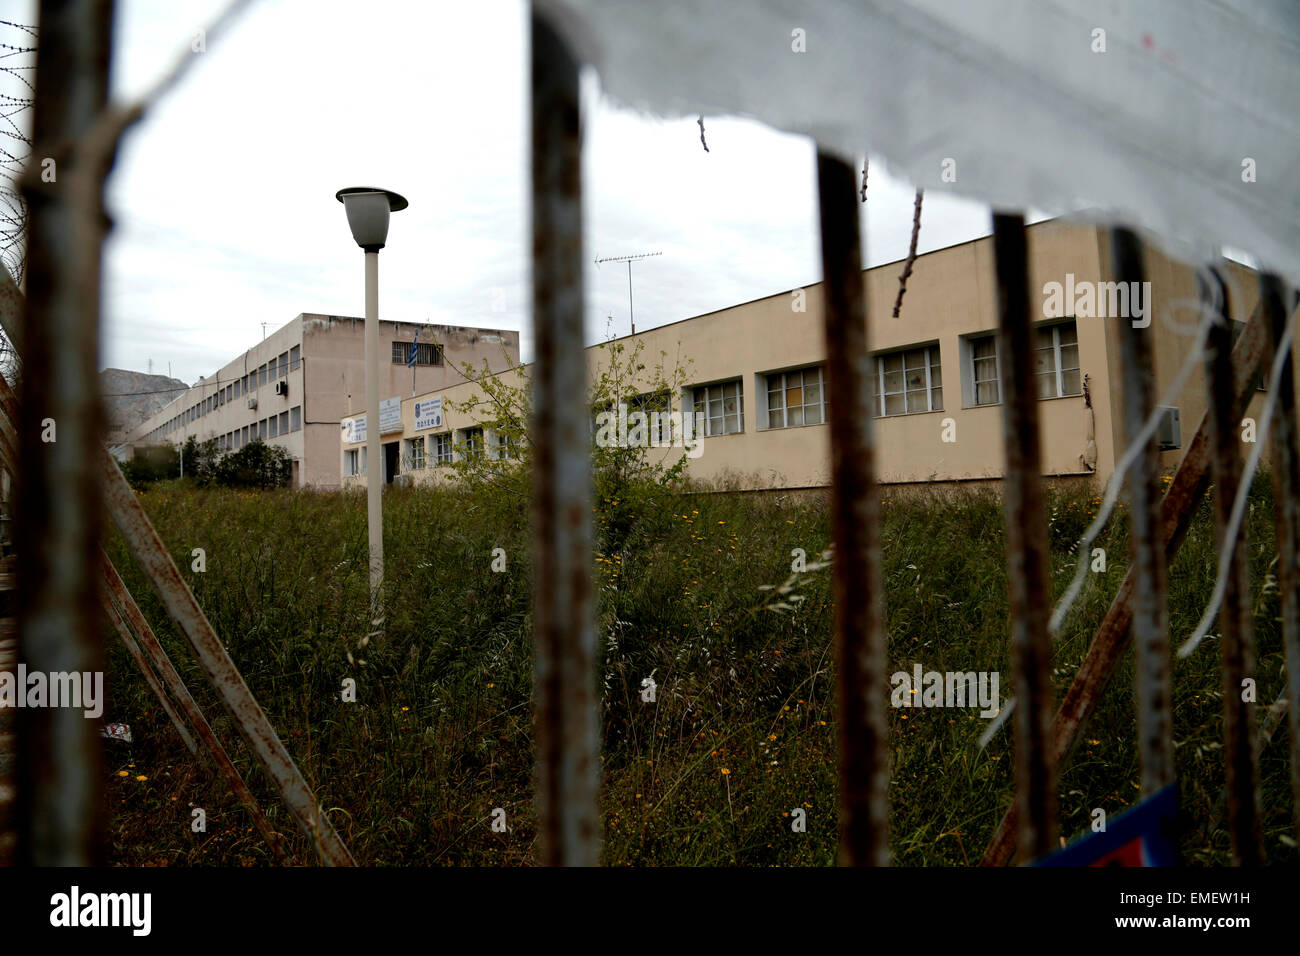 Athens, Greece. 20th Apr, 2015. A view of Korydallos Prison inside which the trial of 69 members of the Greek ultra - Stock Image